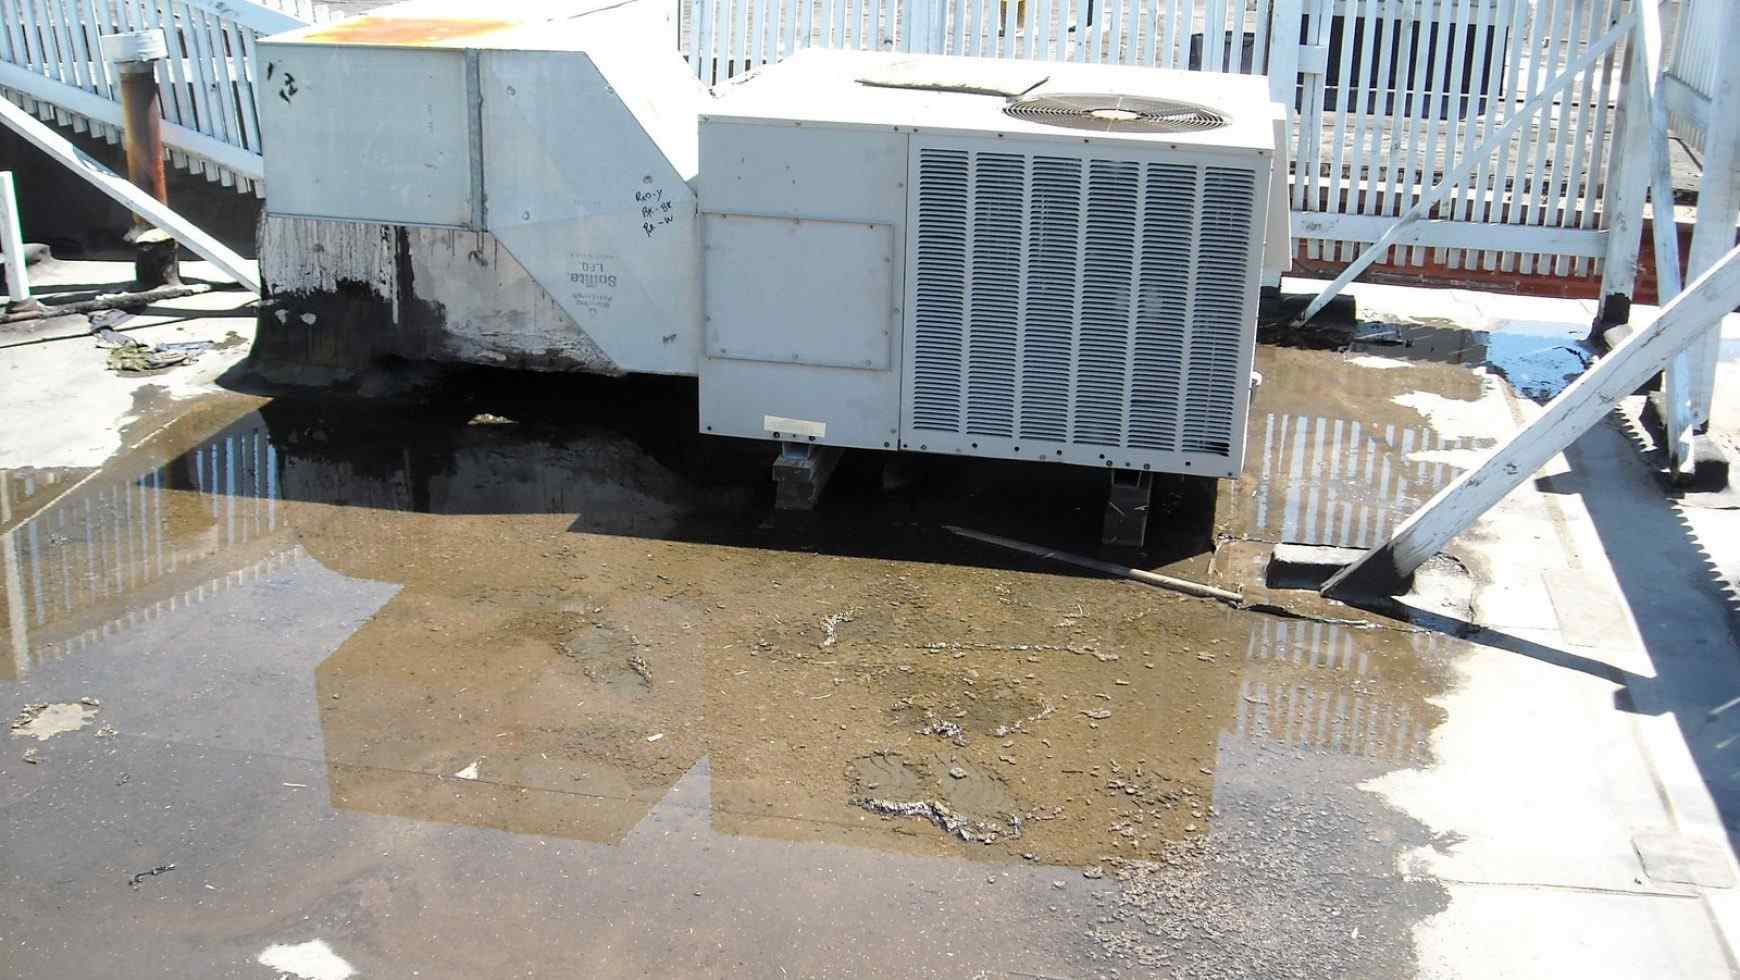 Ponding Water Sources Other Than Rain: Leaks From Cooler Lines to Structural Issues